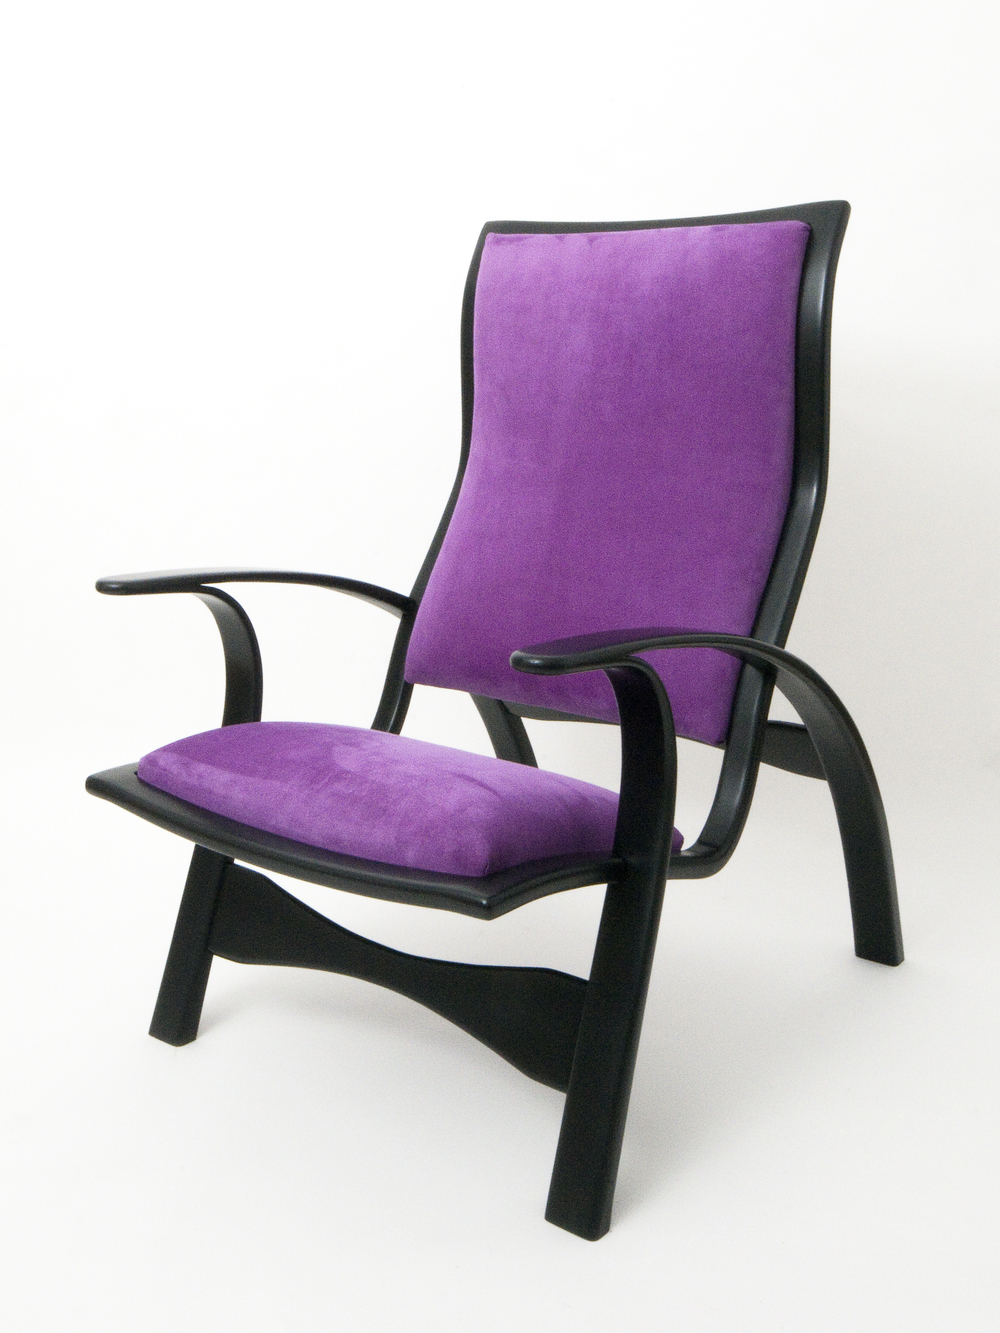 Crown royal chair3.jpg